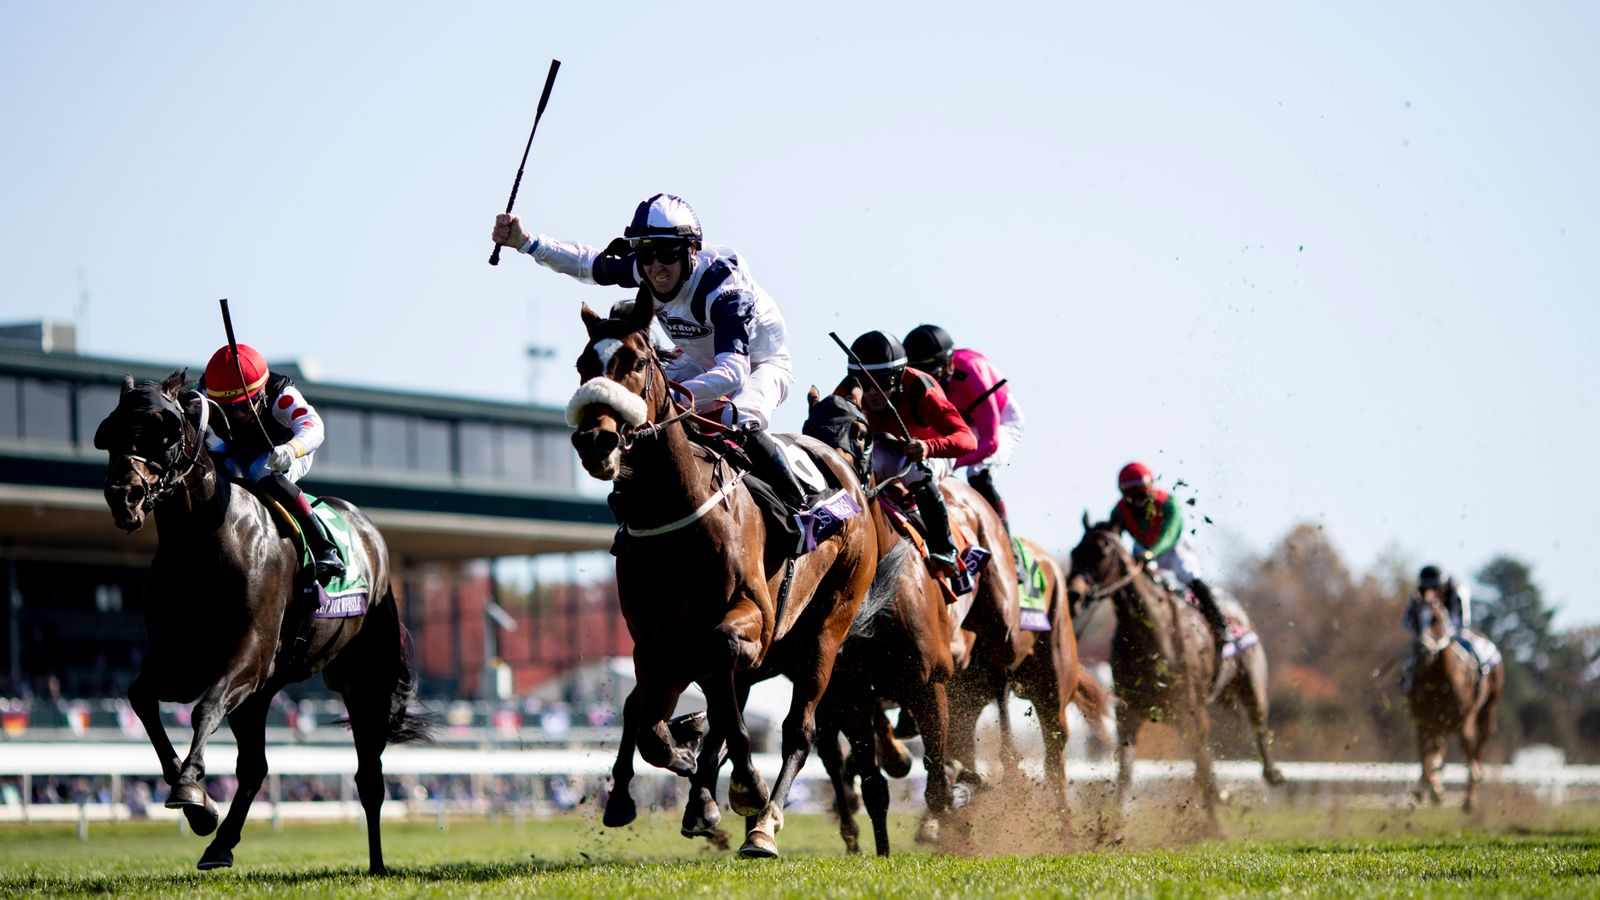 Slippers stars at Keeneland Glass